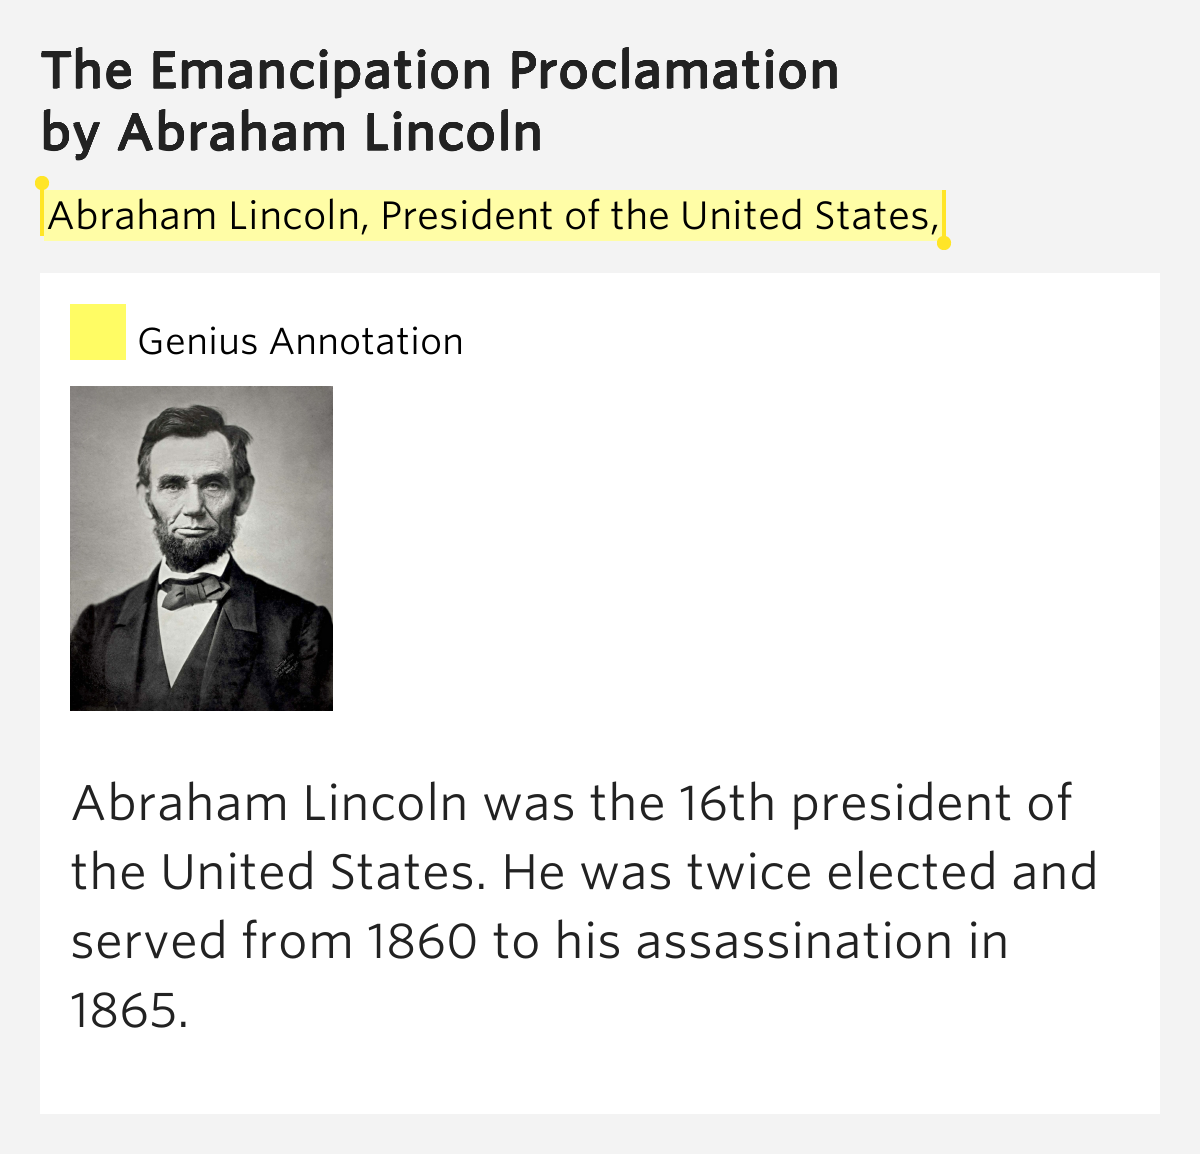 a biography of abraham lincoln the president of the united states Lucidcafé's profile of abraham lincoln  than a year of formal education to become the 16th president of the united states,  biography - abraham lincoln:.